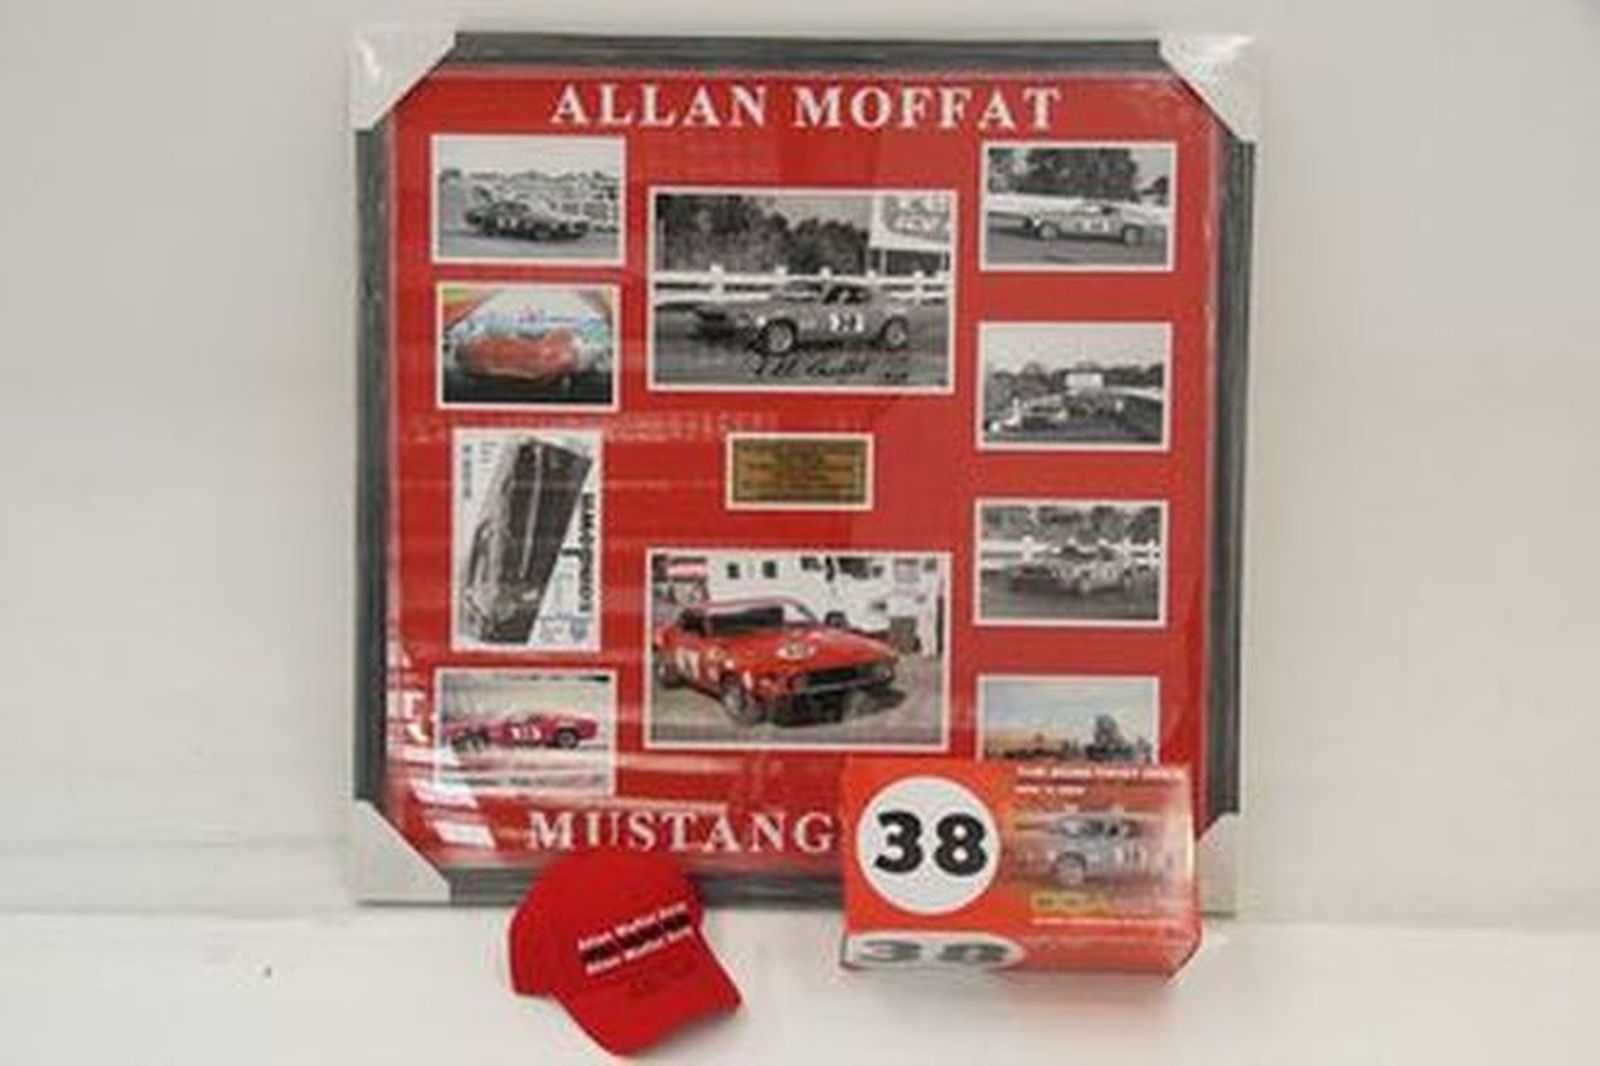 Allan Moffat signed items